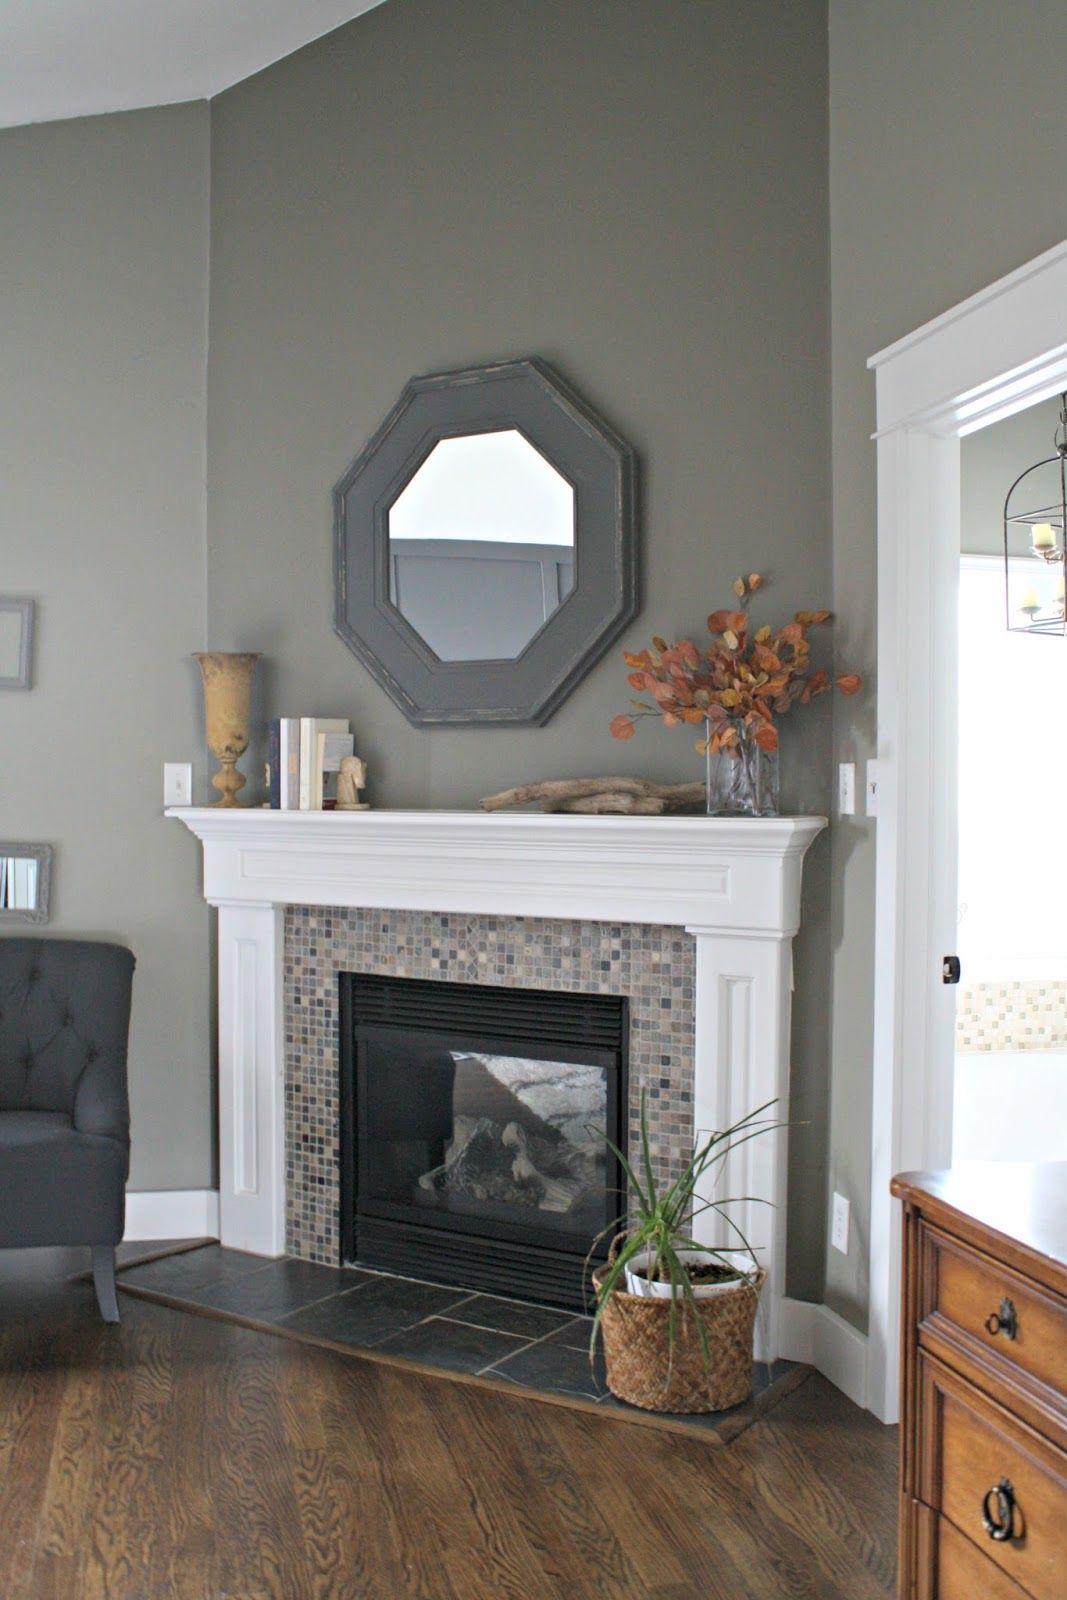 Our Home New house lounge room Pinterest Fireplace hearth